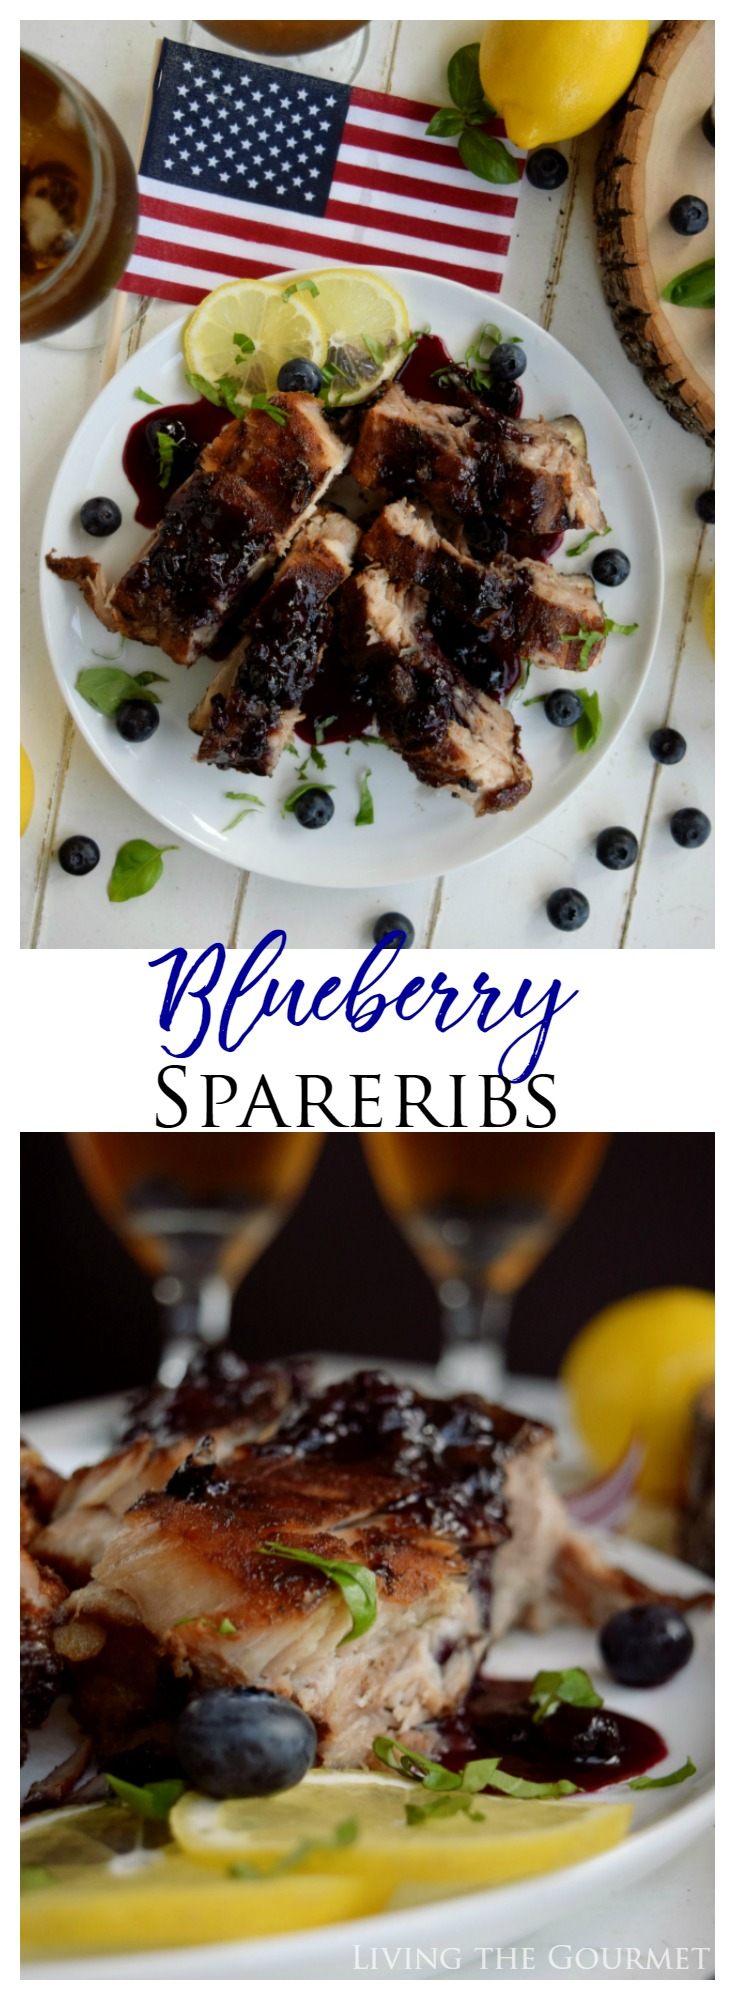 New on Living the Gourmet: Blueberry Spareribs  | Kick up your summer grilling with this sweet blueberry bbq sauce served over extra tender back ribs! #GetGrillingAmerica #ad